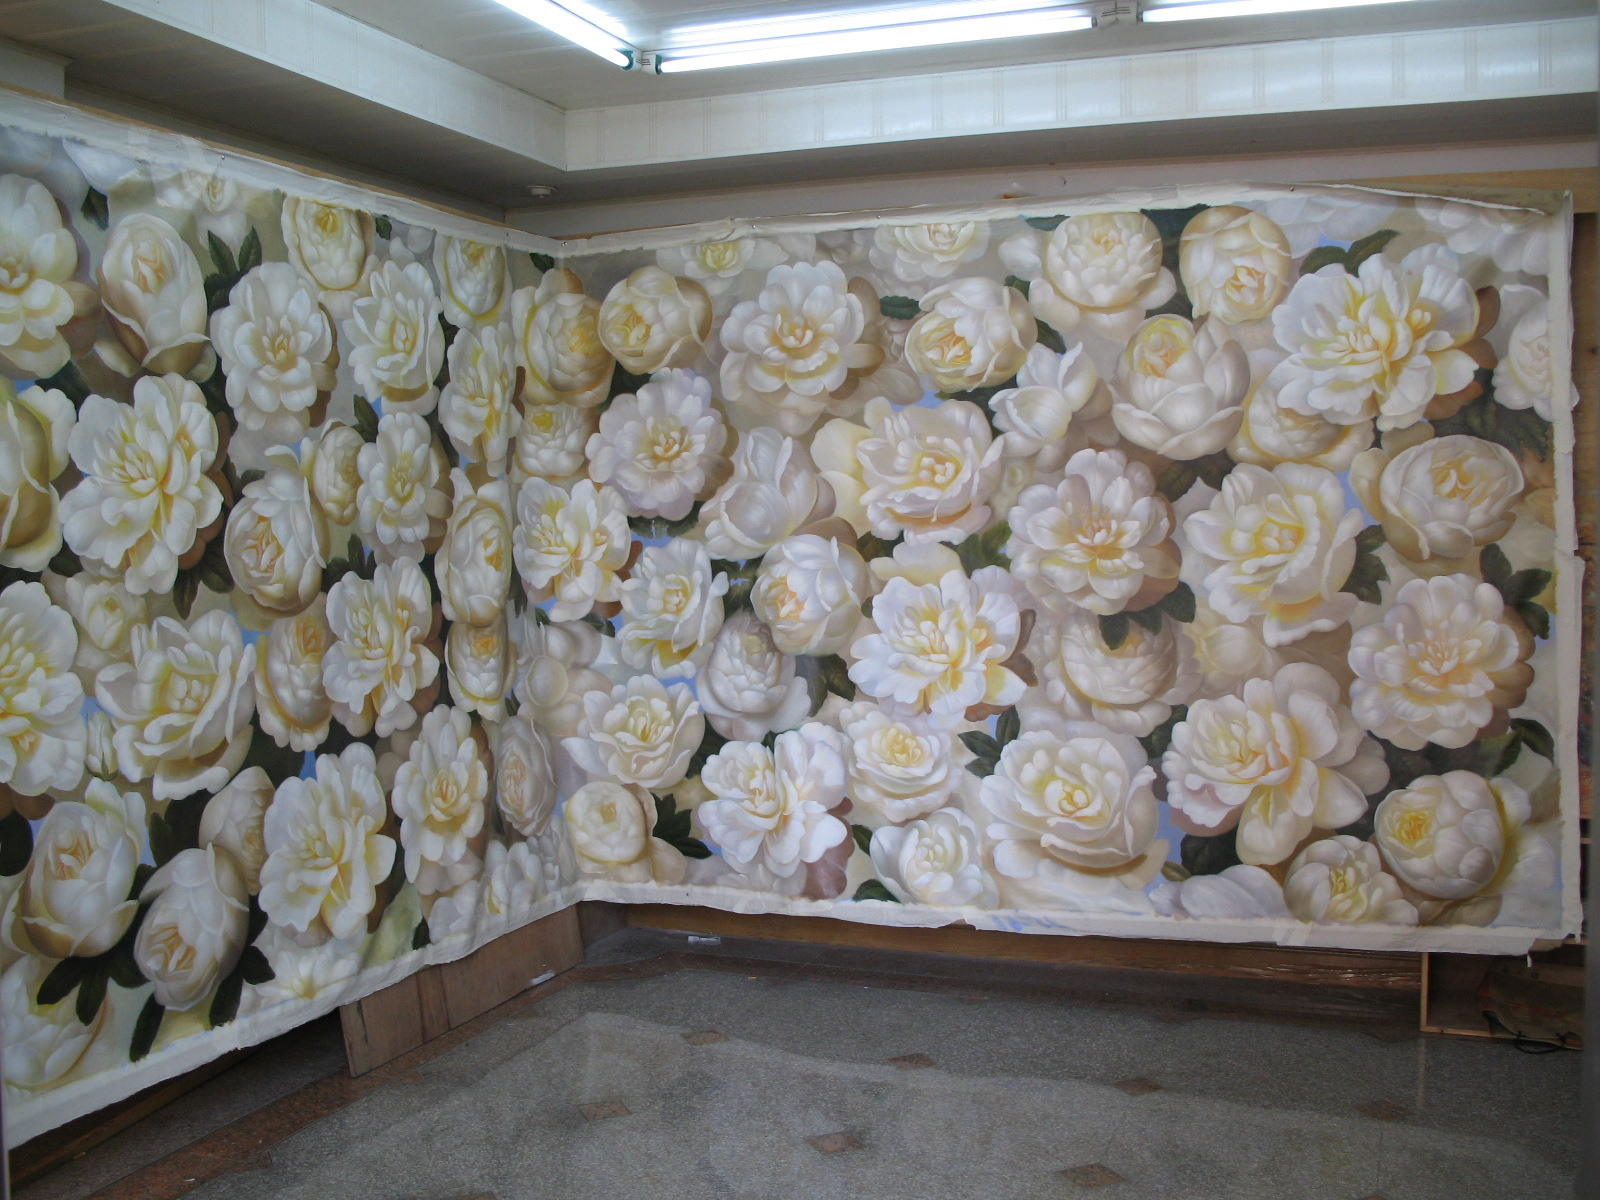 Roses all around the room